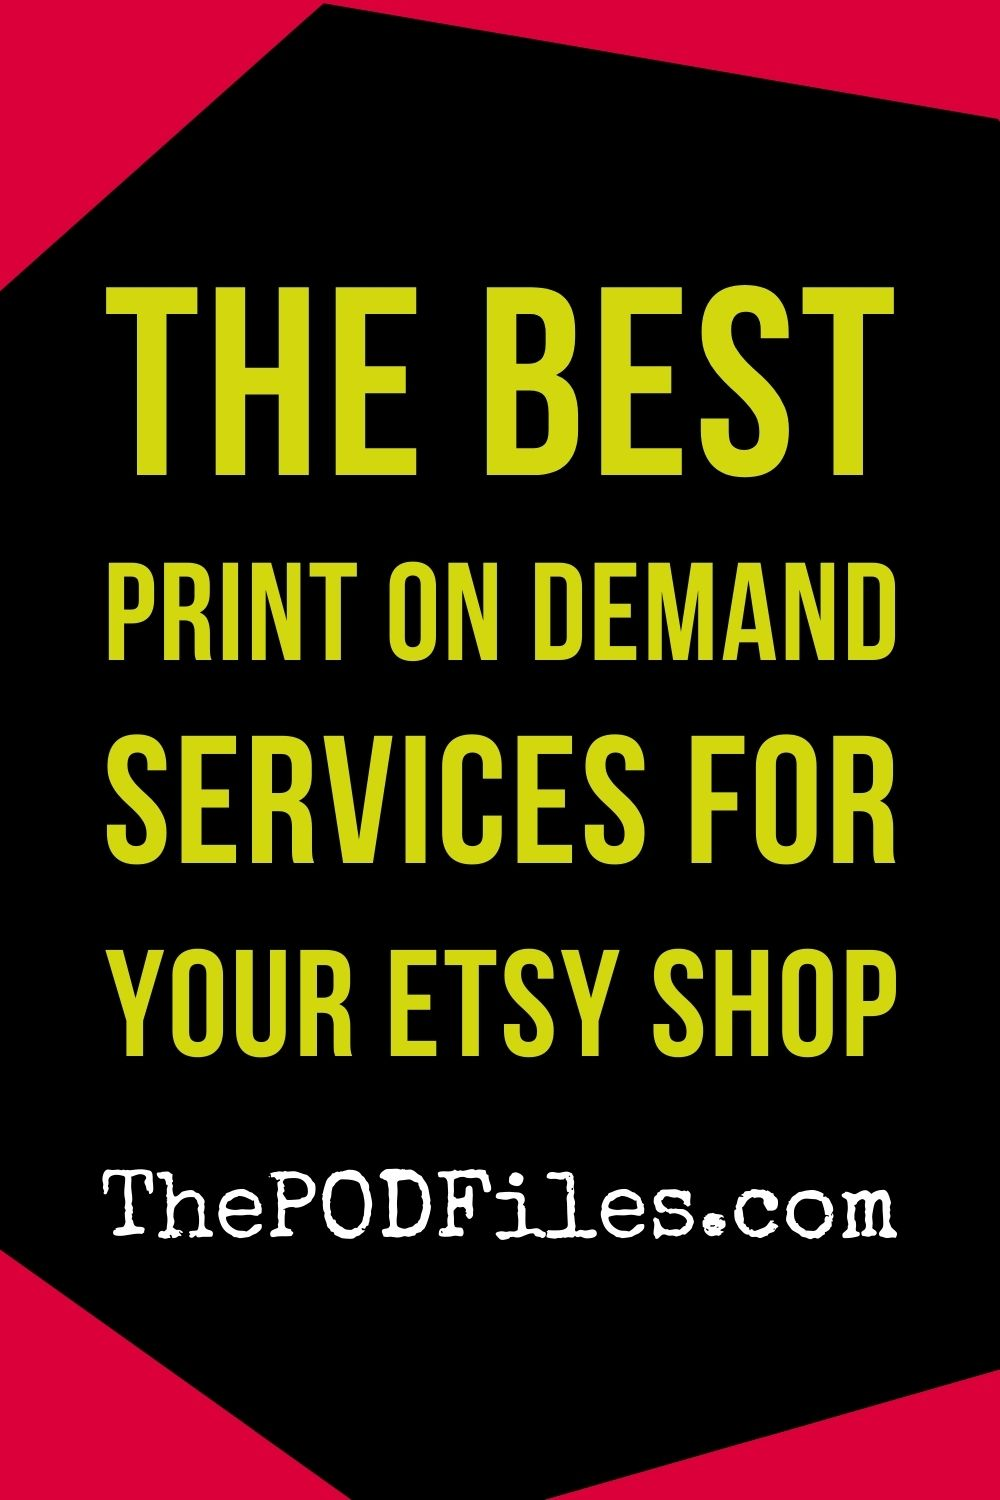 The best print on demand drop shipping services for your Etsy shop.